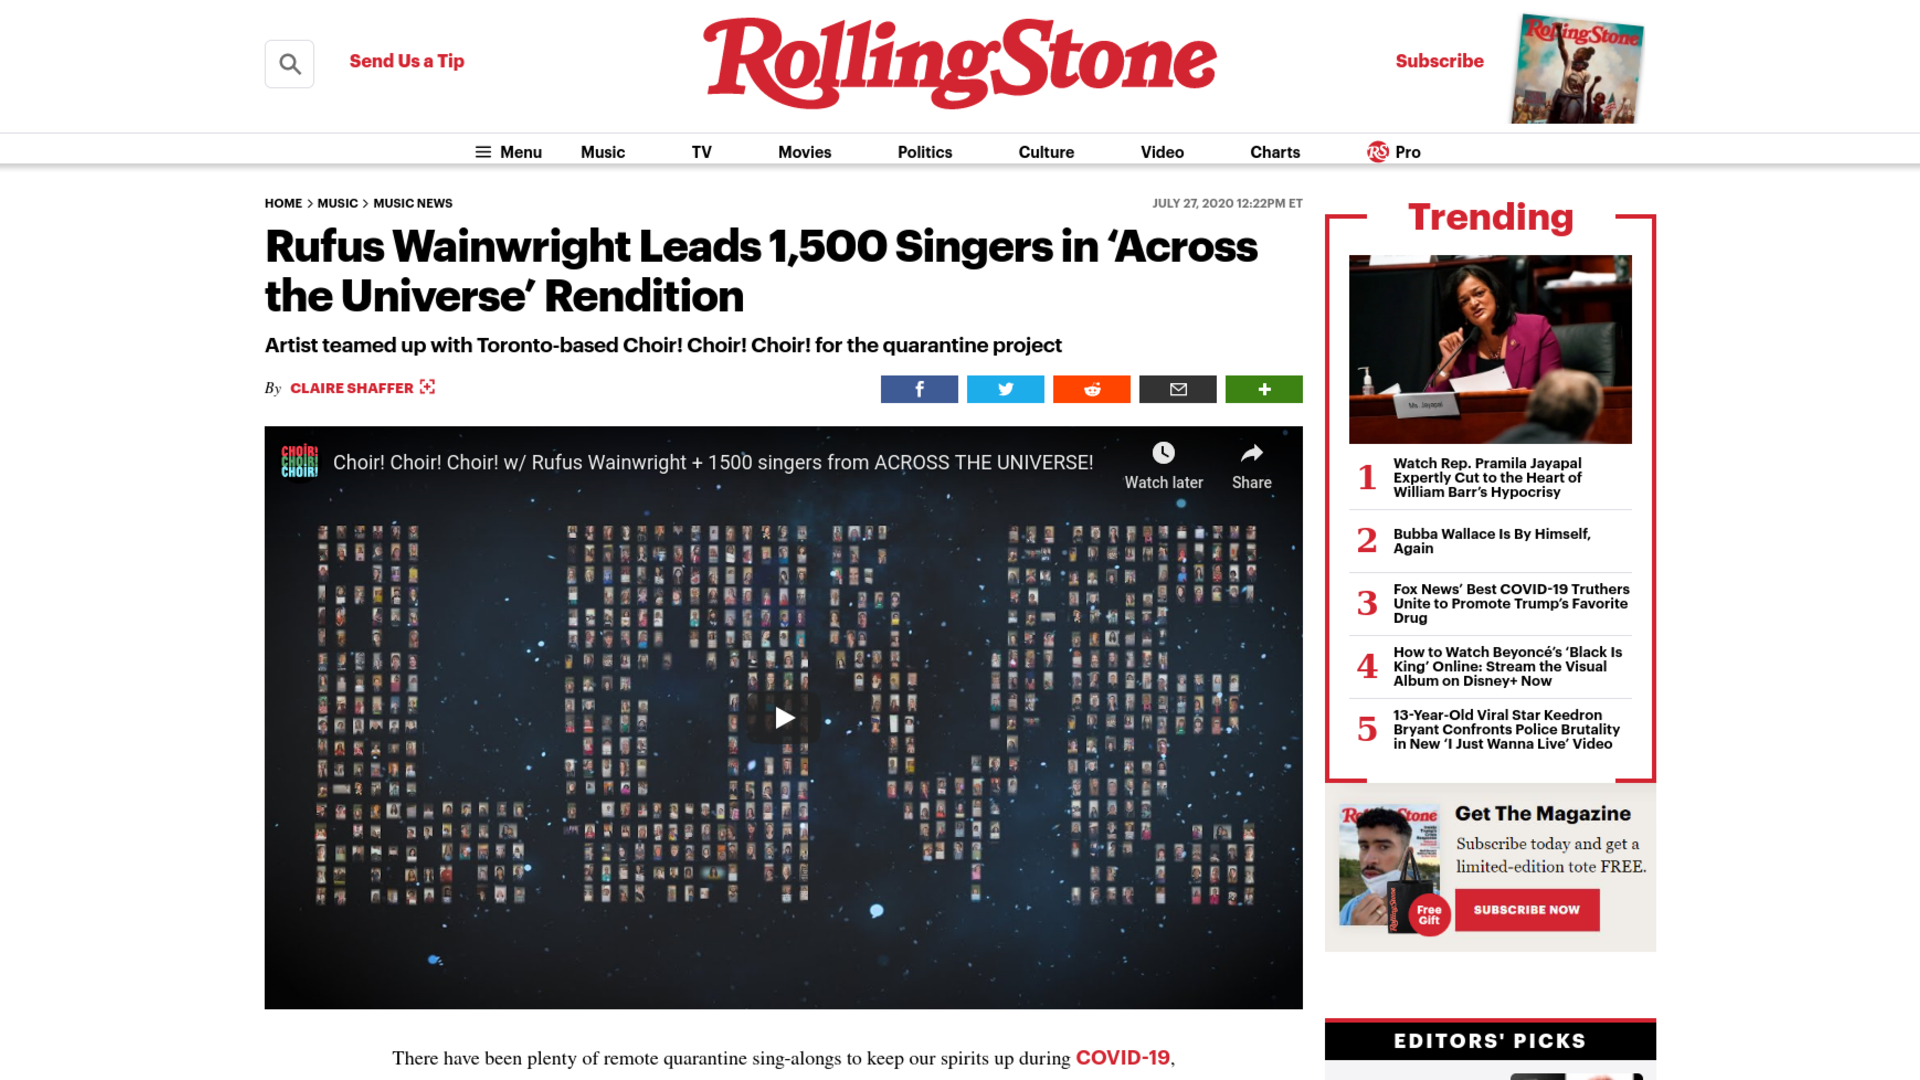 Fairness Rocks News Rufus Wainwright Leads 1,500 Singers in 'Across the Universe' Rendition